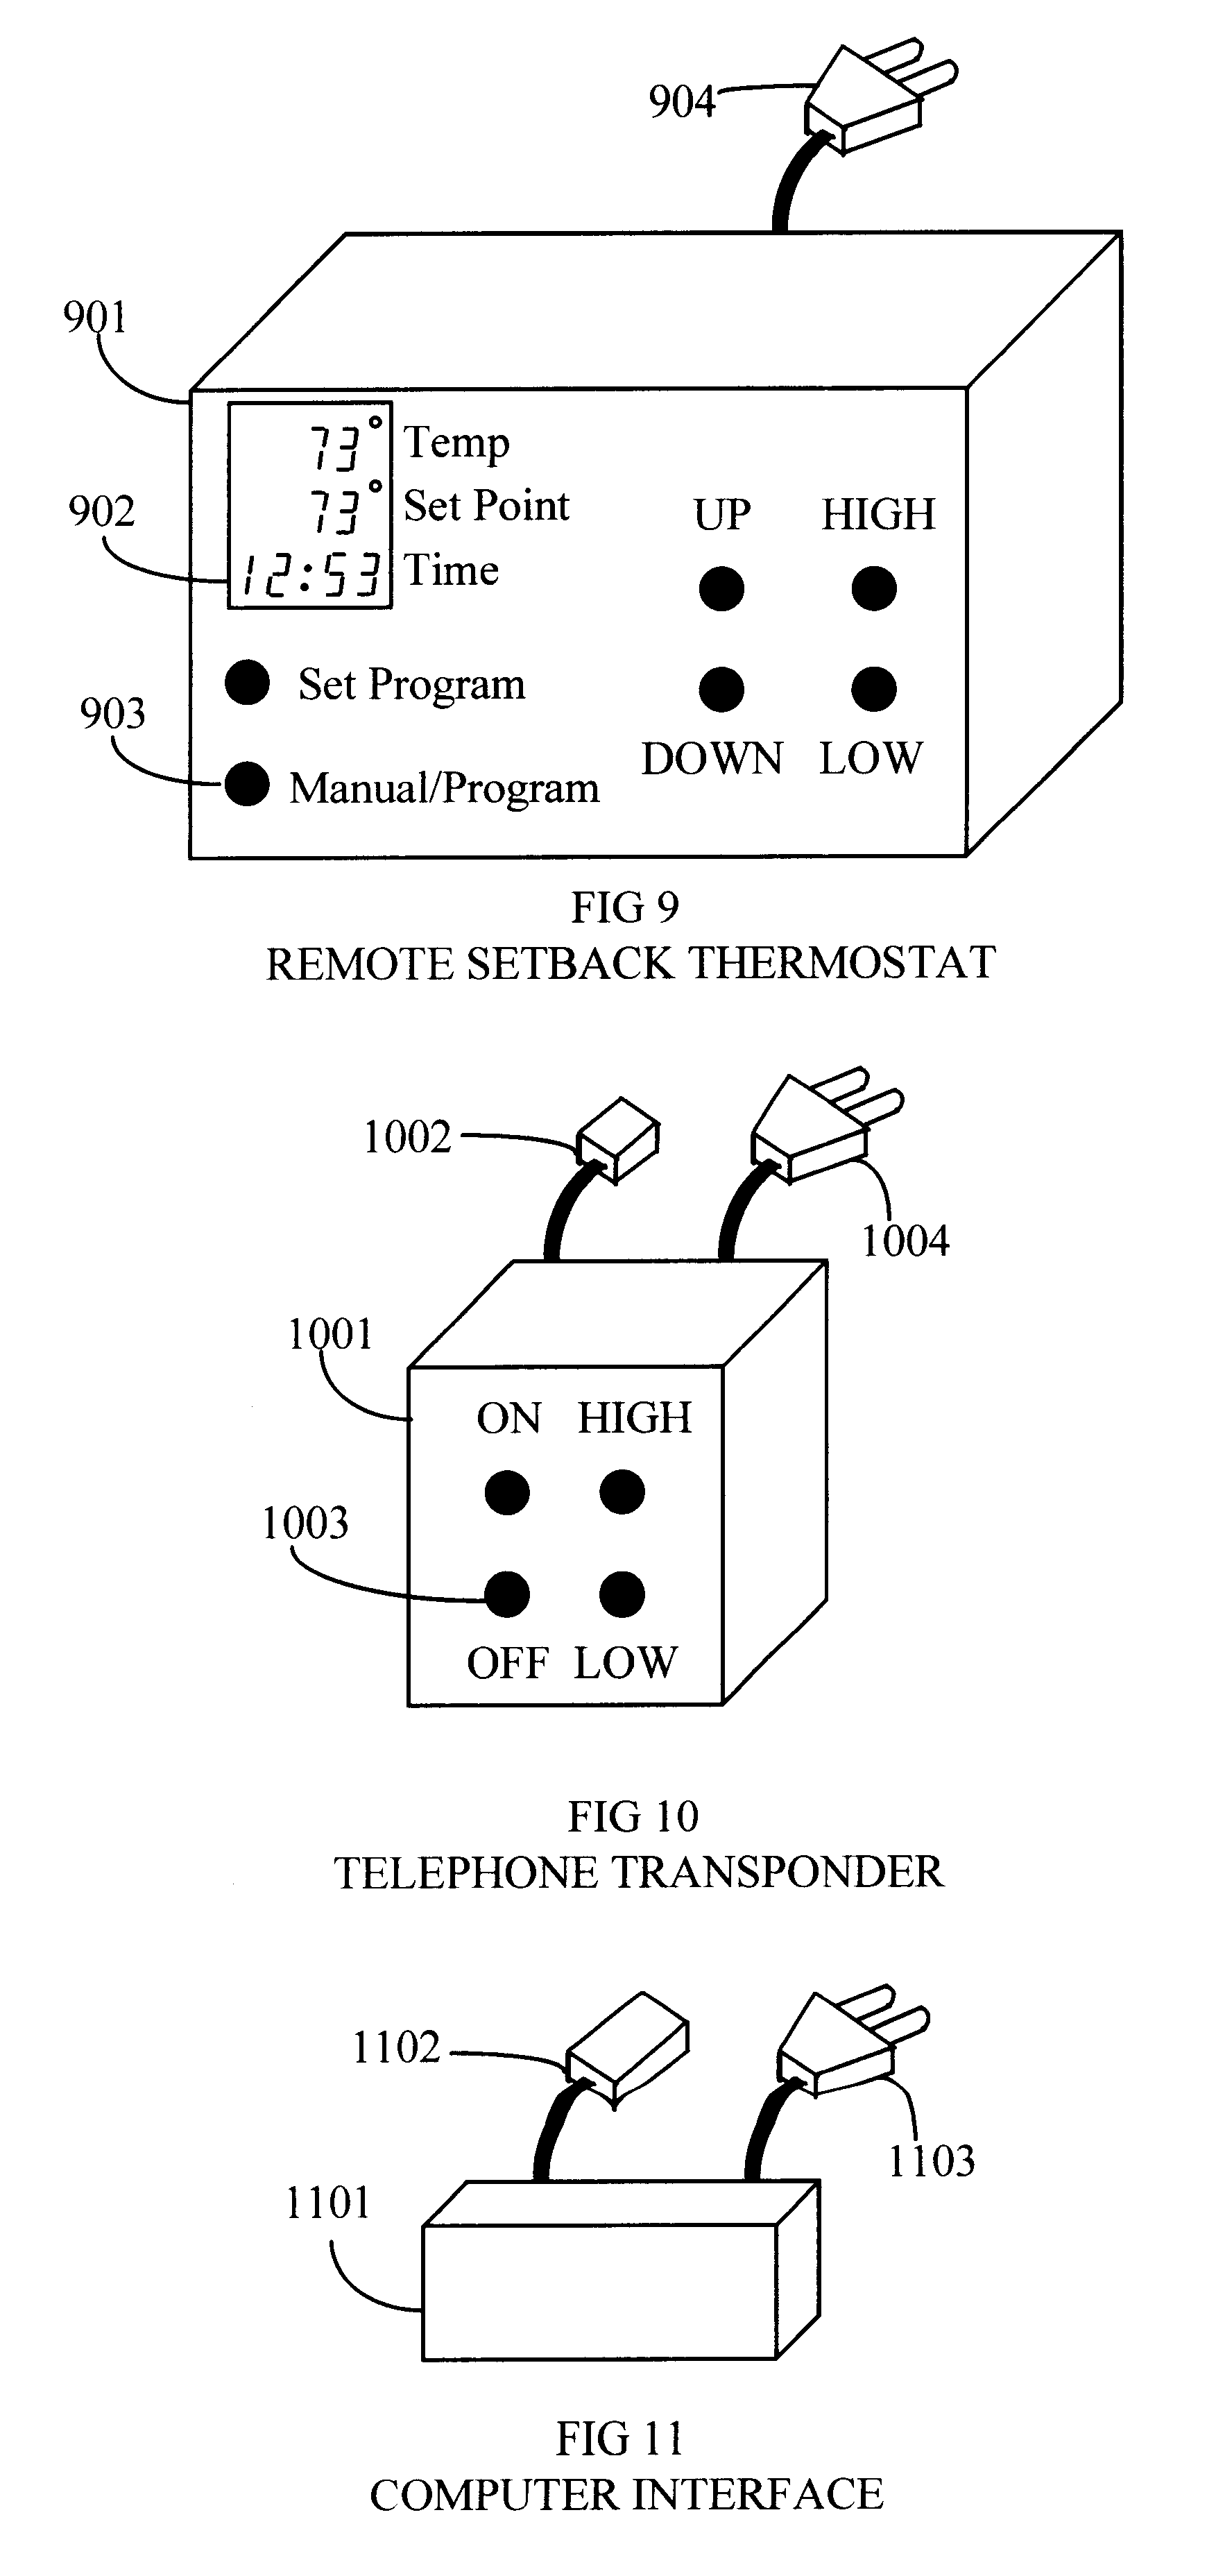 patent us6357243 remote control system for evaporative coolers patent drawing